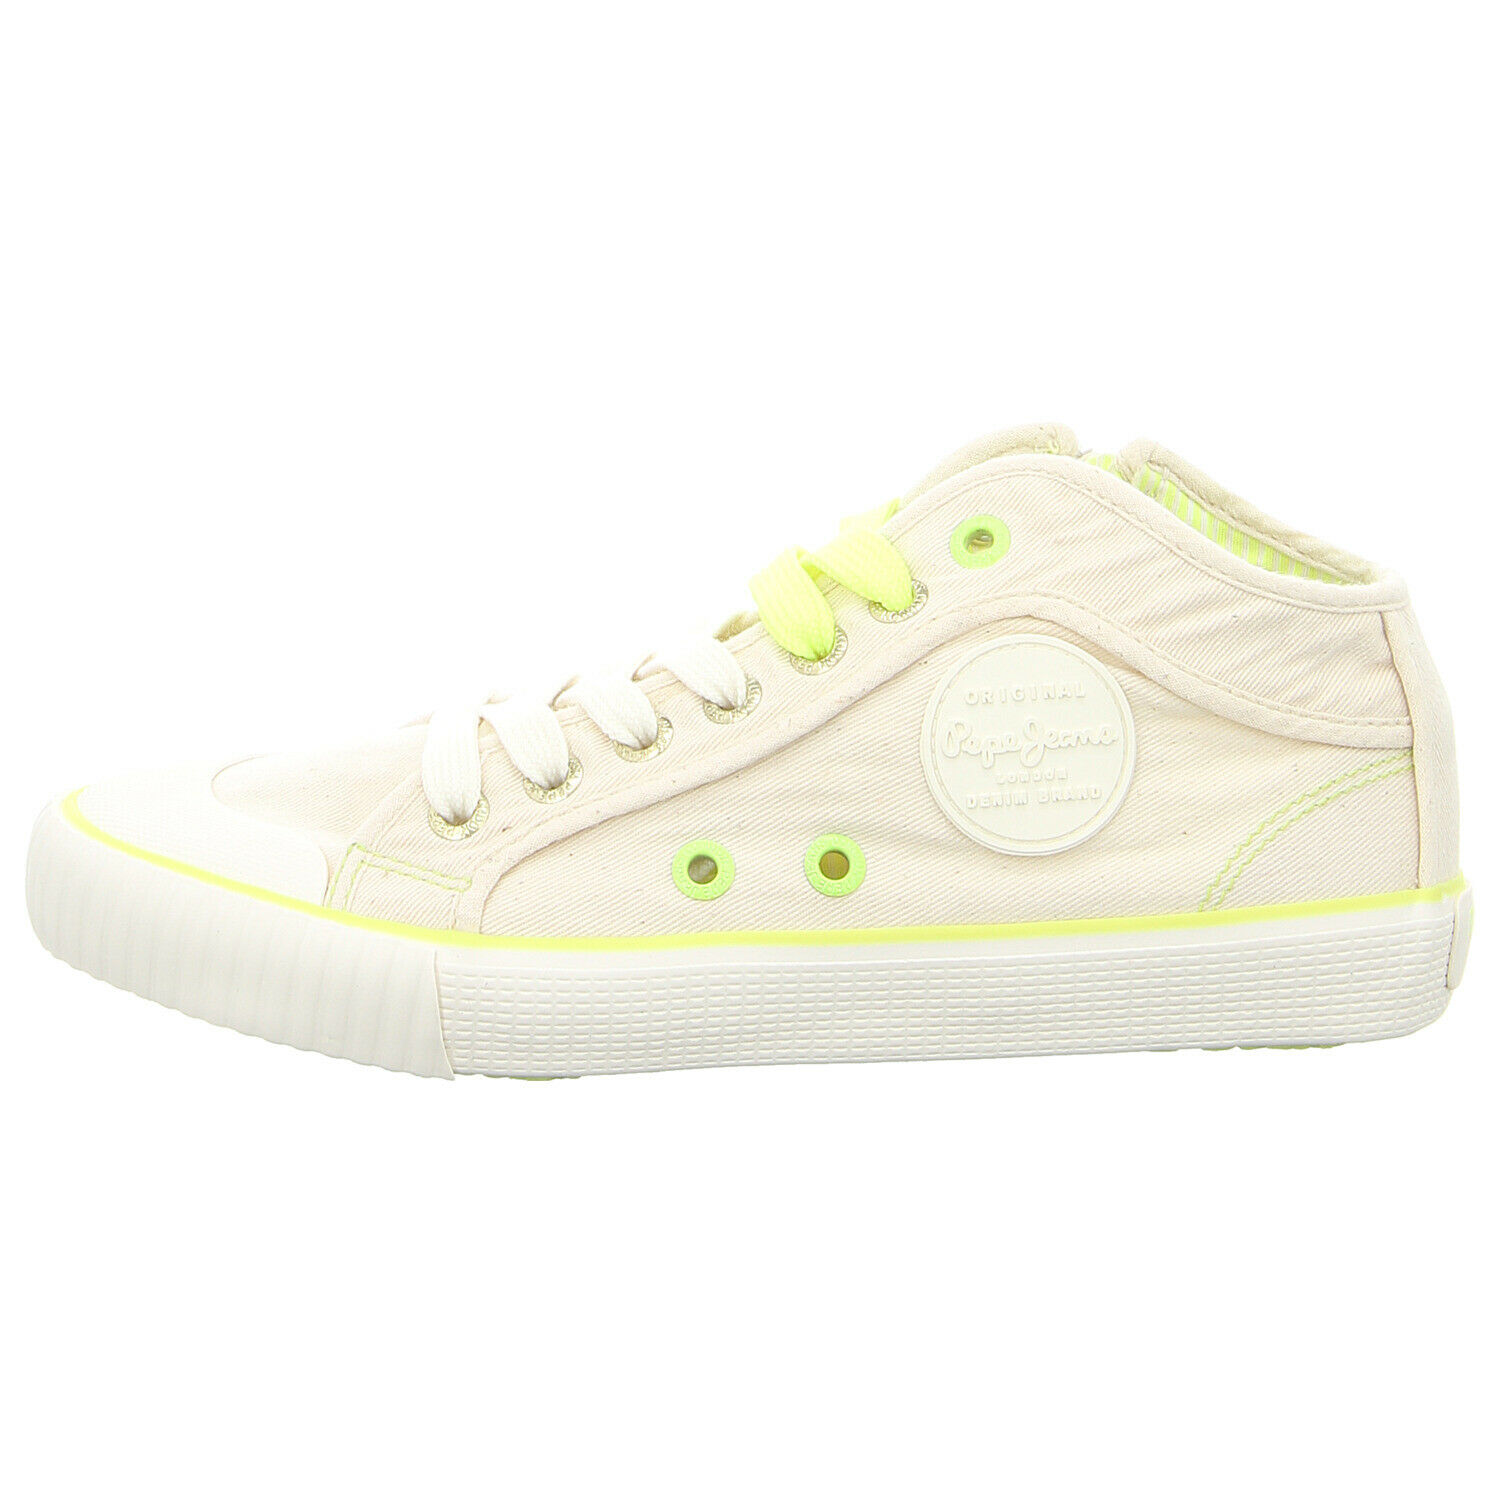 PEPE JEANS Chaussures baskets Industry Neon pls30846-803 Off blanc (Blanc) NEUF